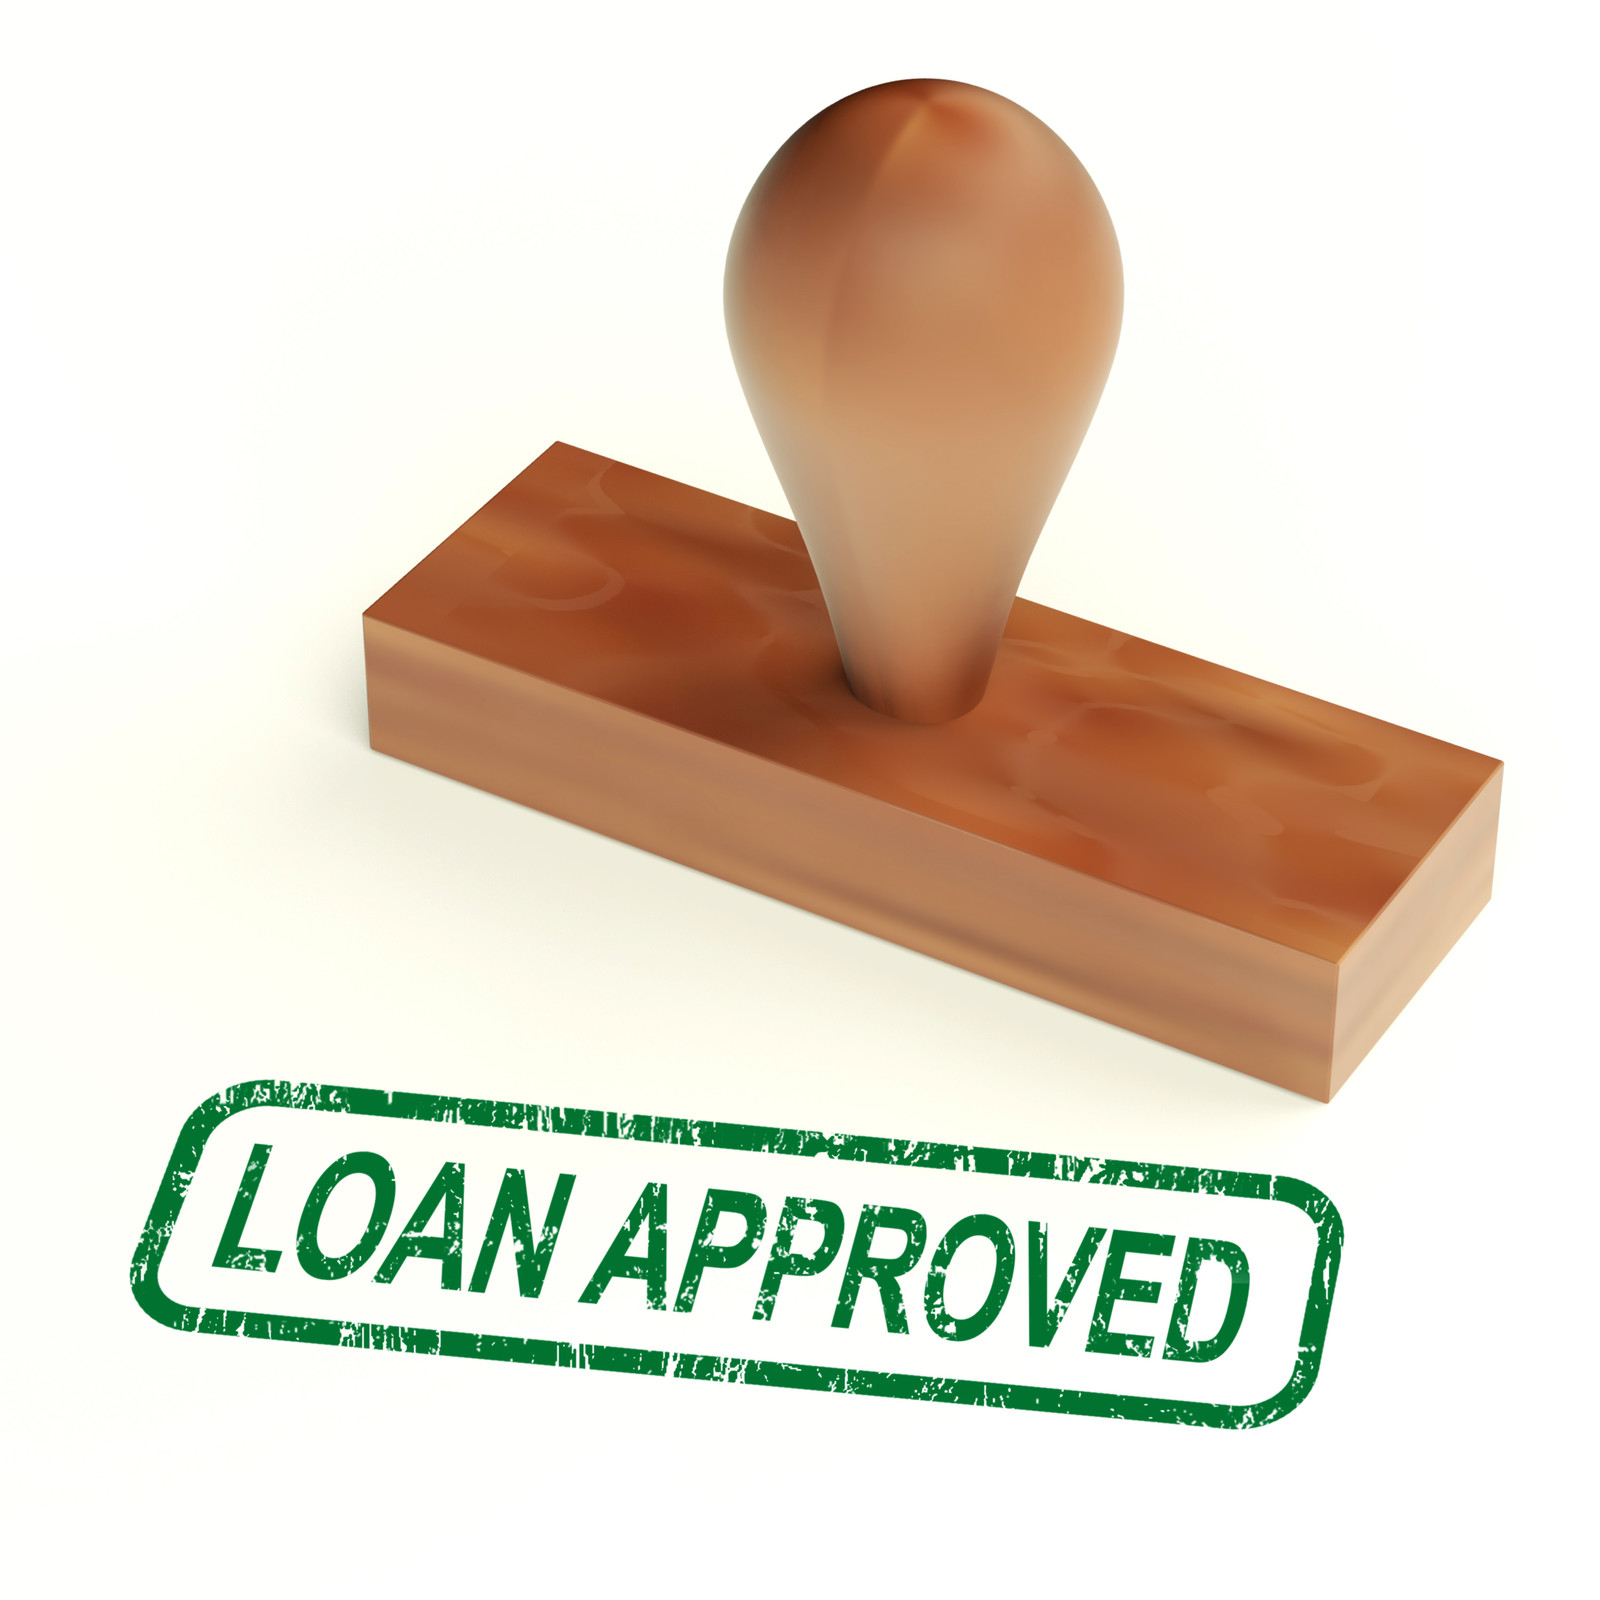 approved-loan.jpg